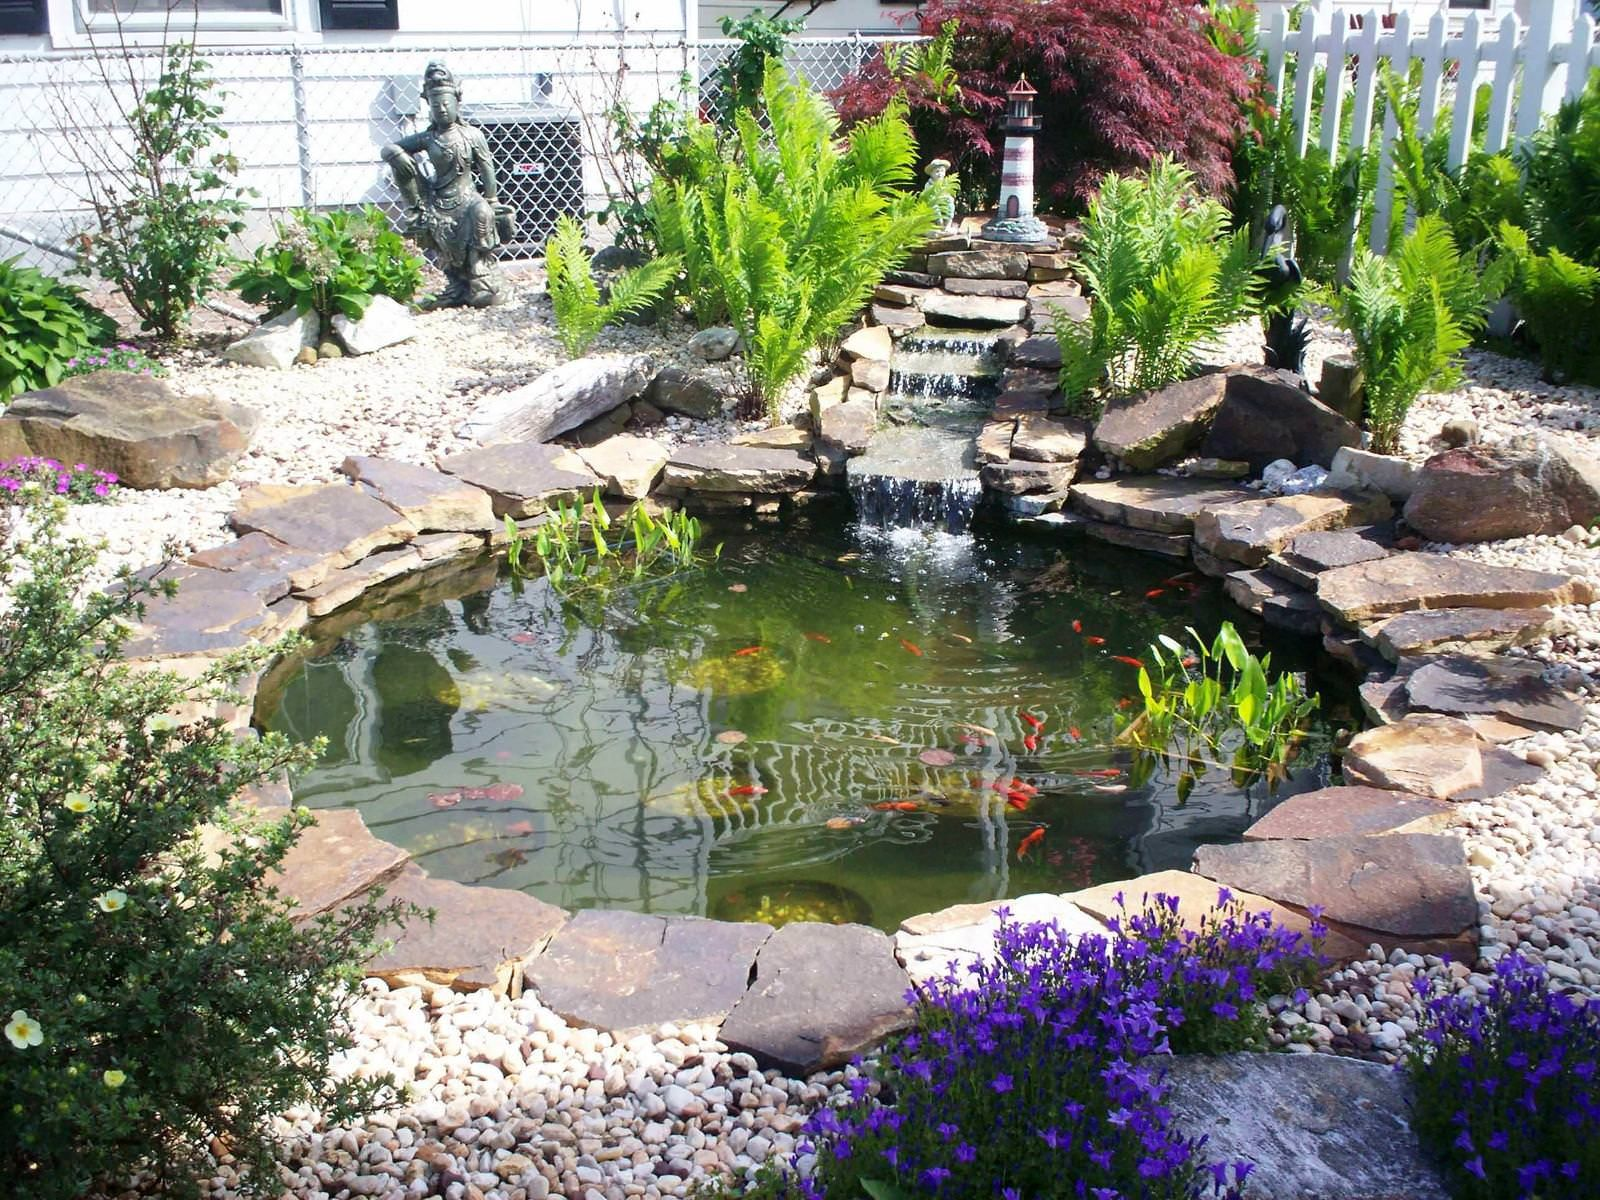 Small garden or backyard aquarium ideas practic ideas for Outside pond ideas